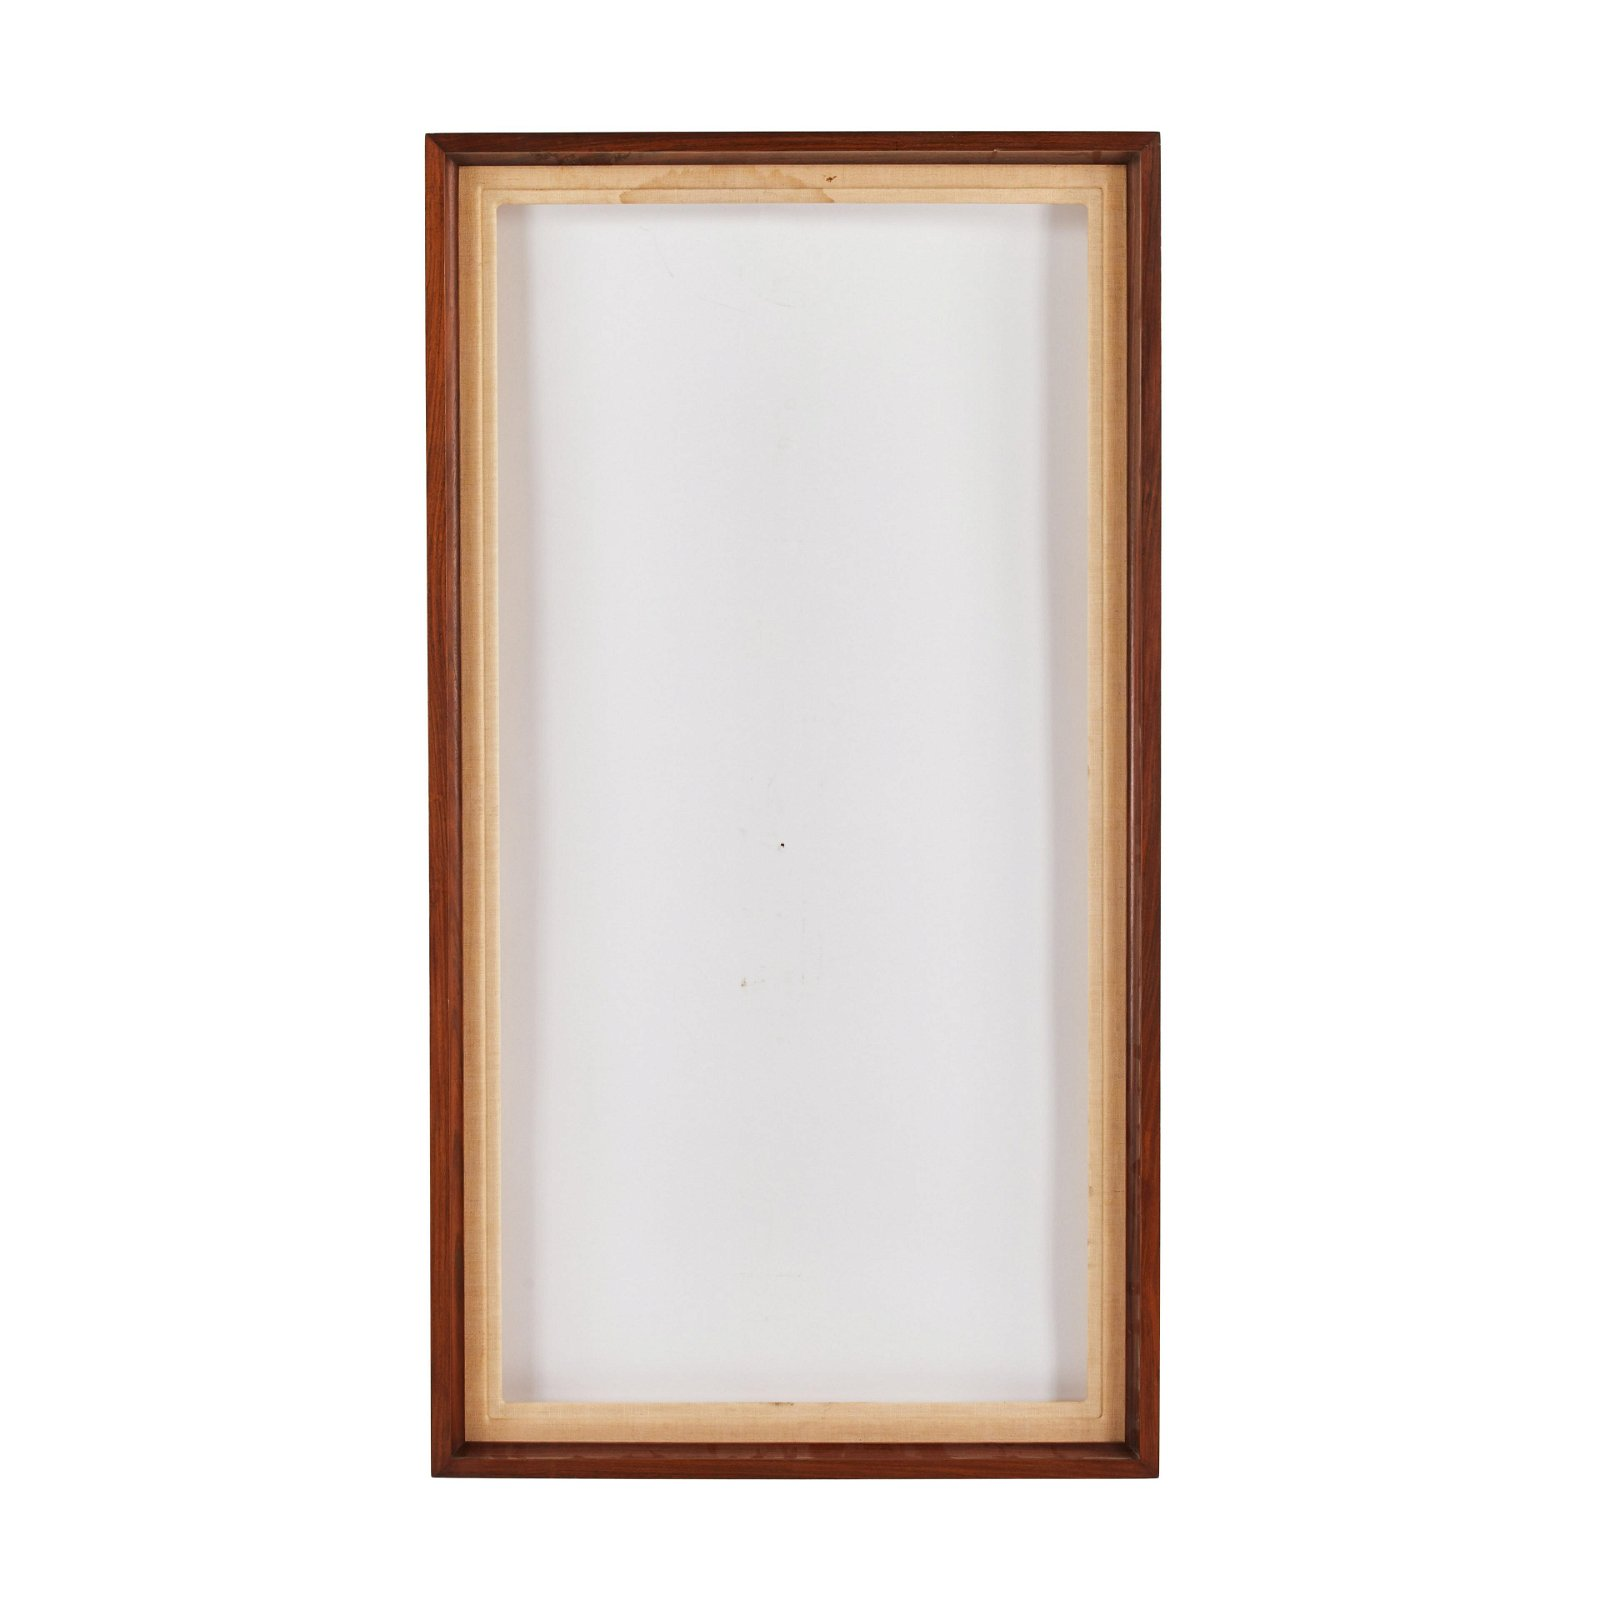 John Nyquist Picture Frames (2)